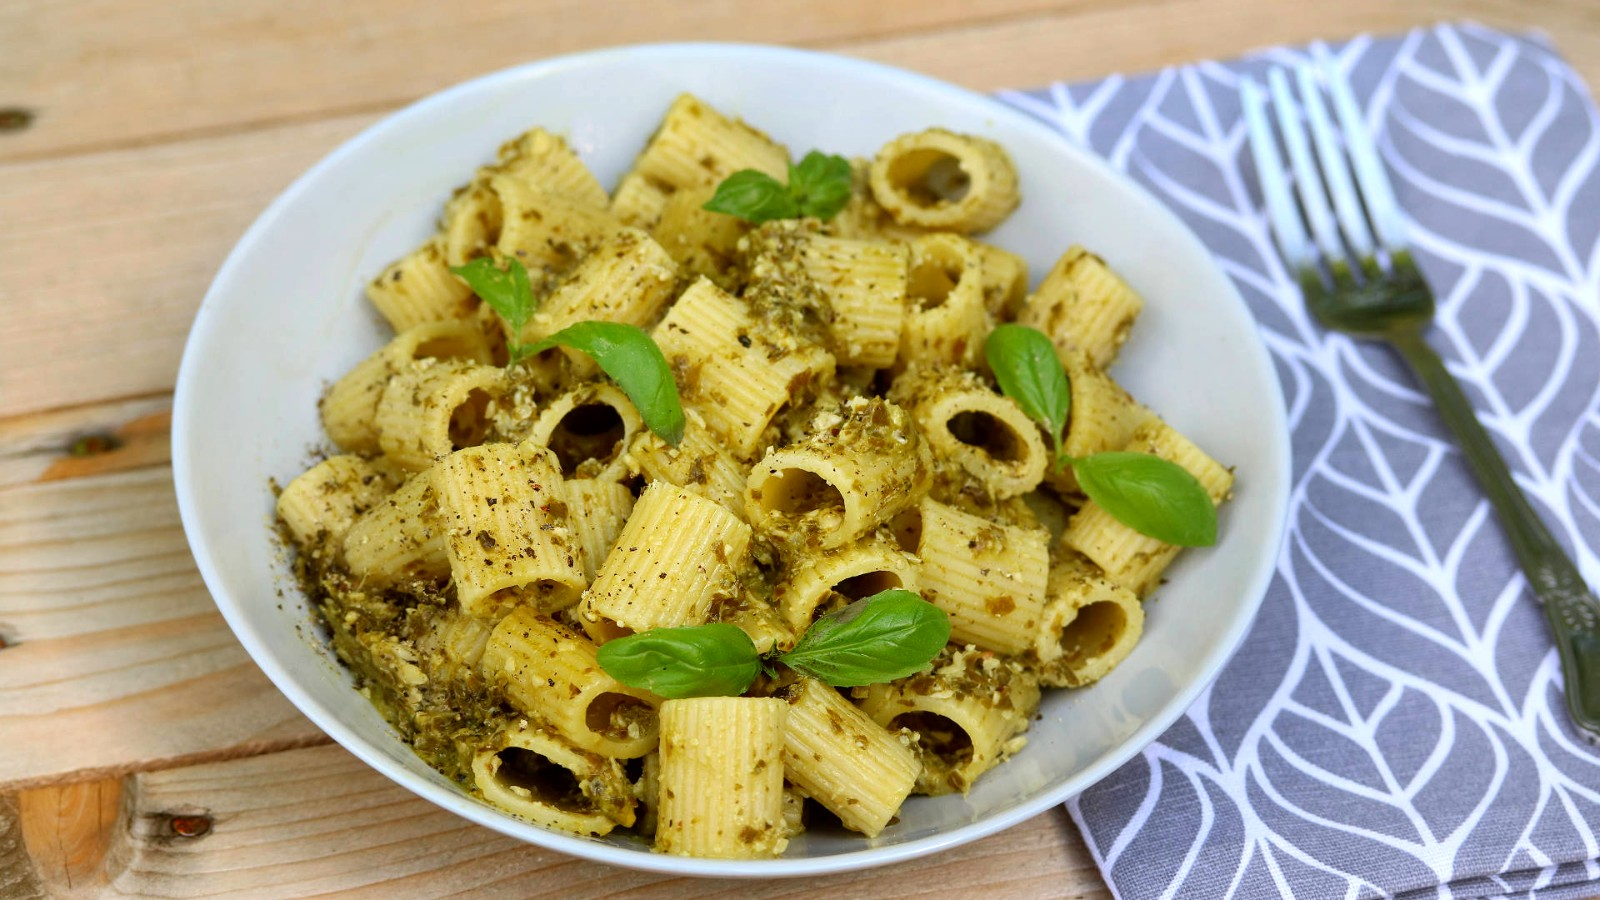 Image of Healthy and Delicious Nut Free Pesto Pasta